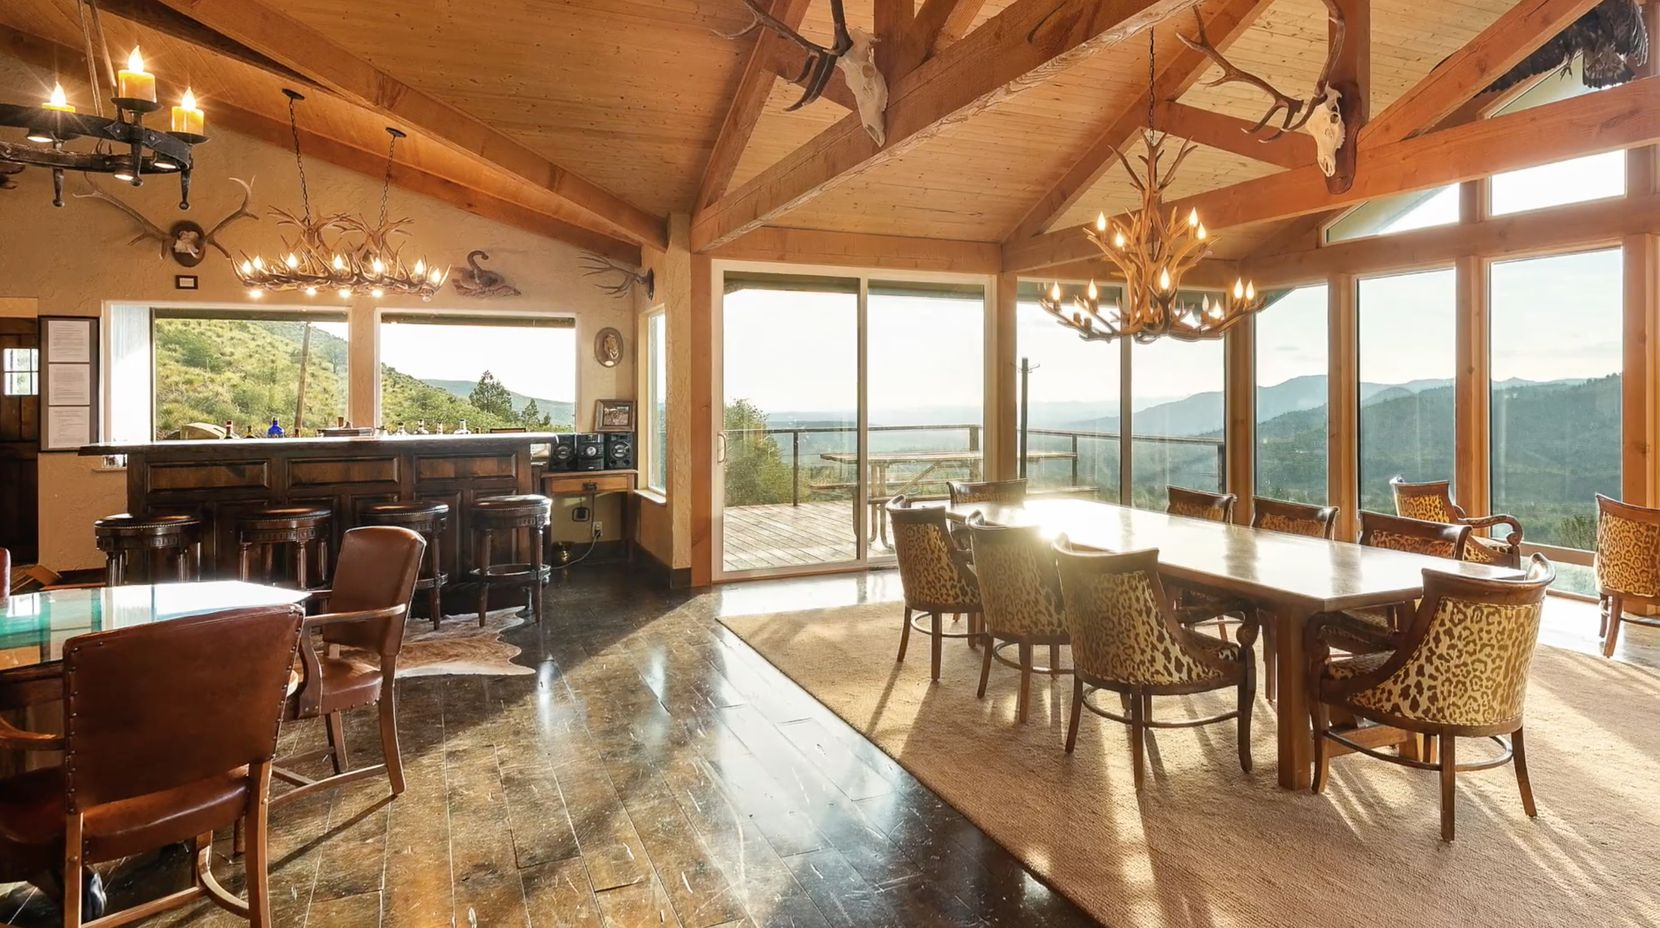 The lodge has views of the mountains.